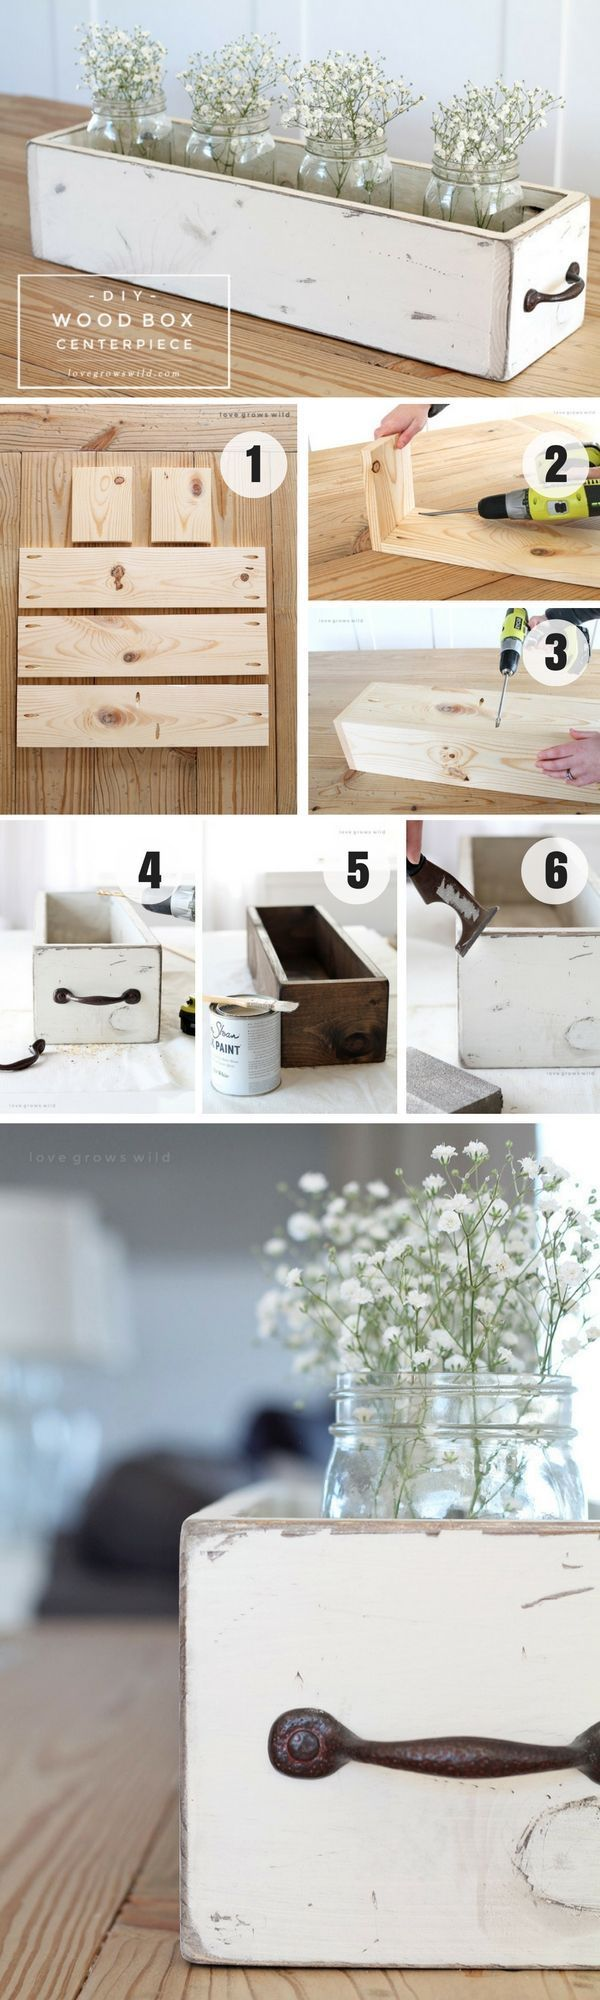 25+ unique Cool wood projects ideas on Pinterest | Woodworking ...